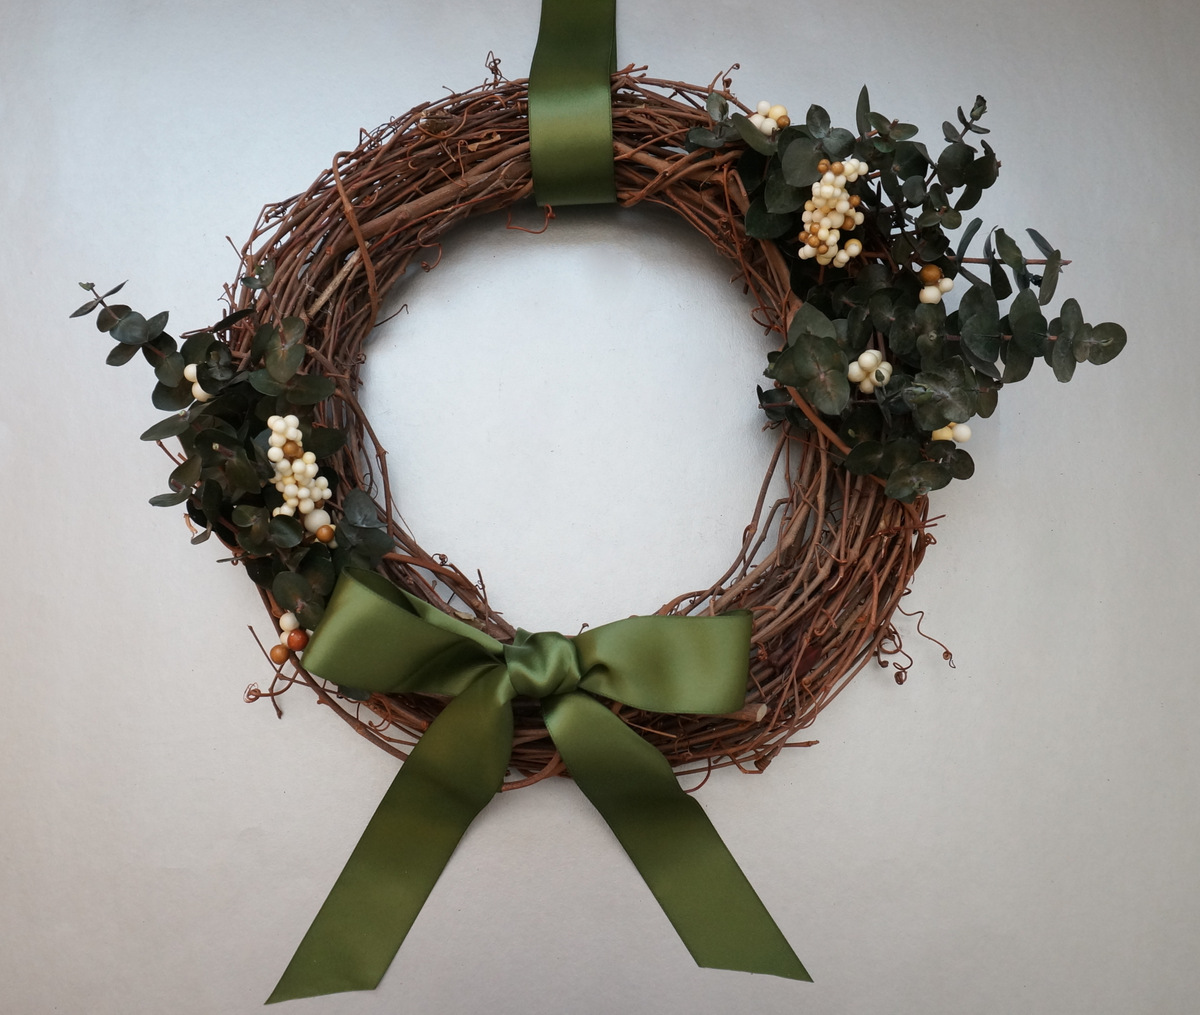 A DIY holiday wreath